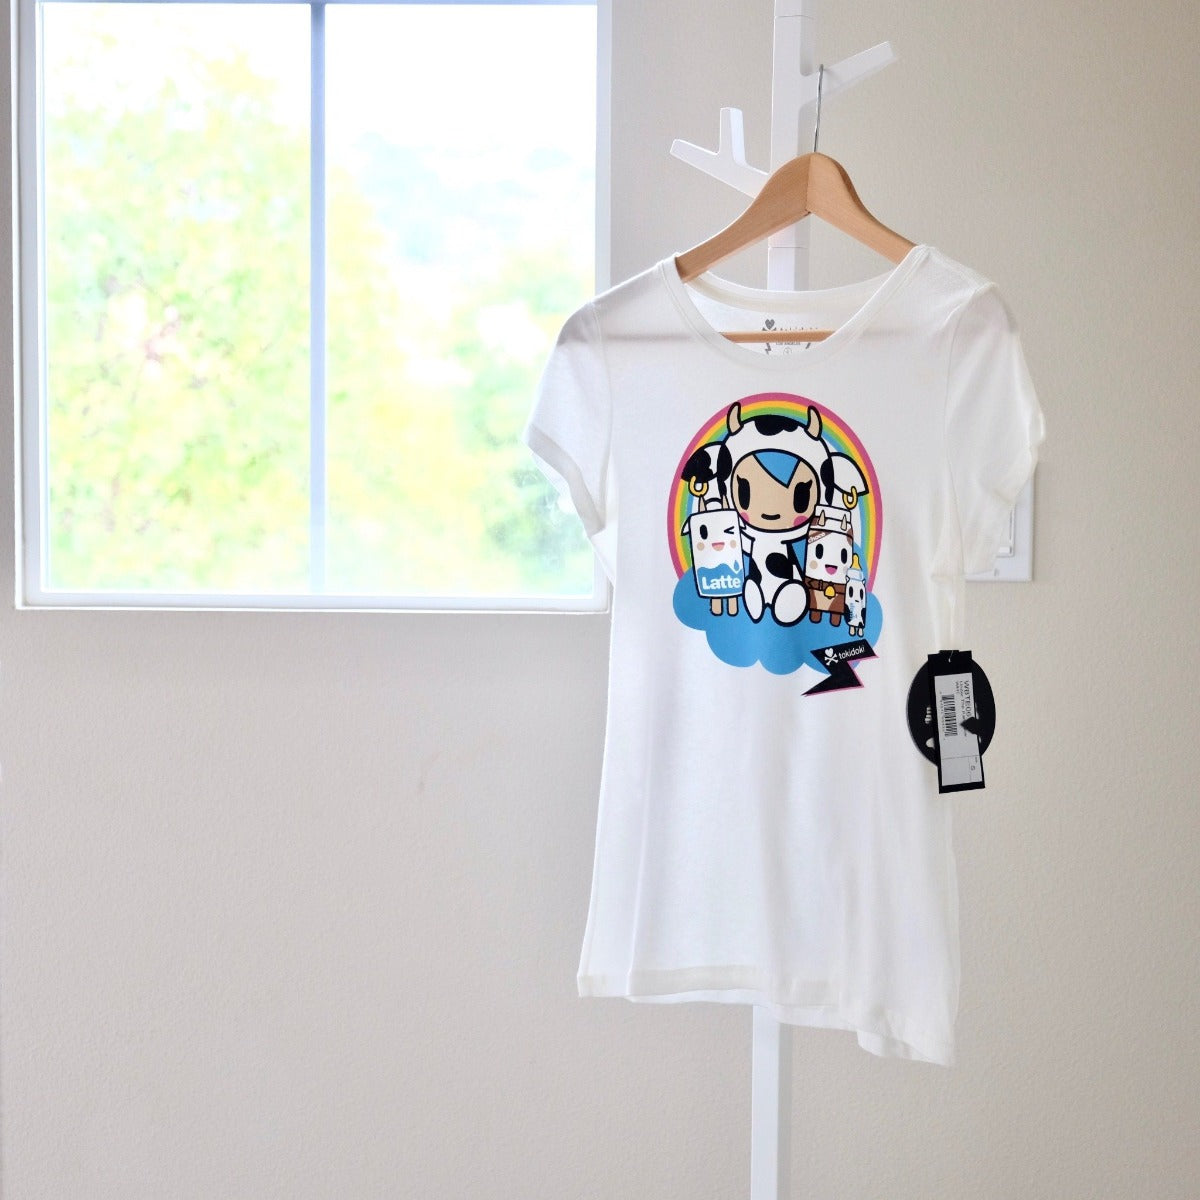 tokidoki Under the Rainbow women's t-shirt with Mozzarella front view